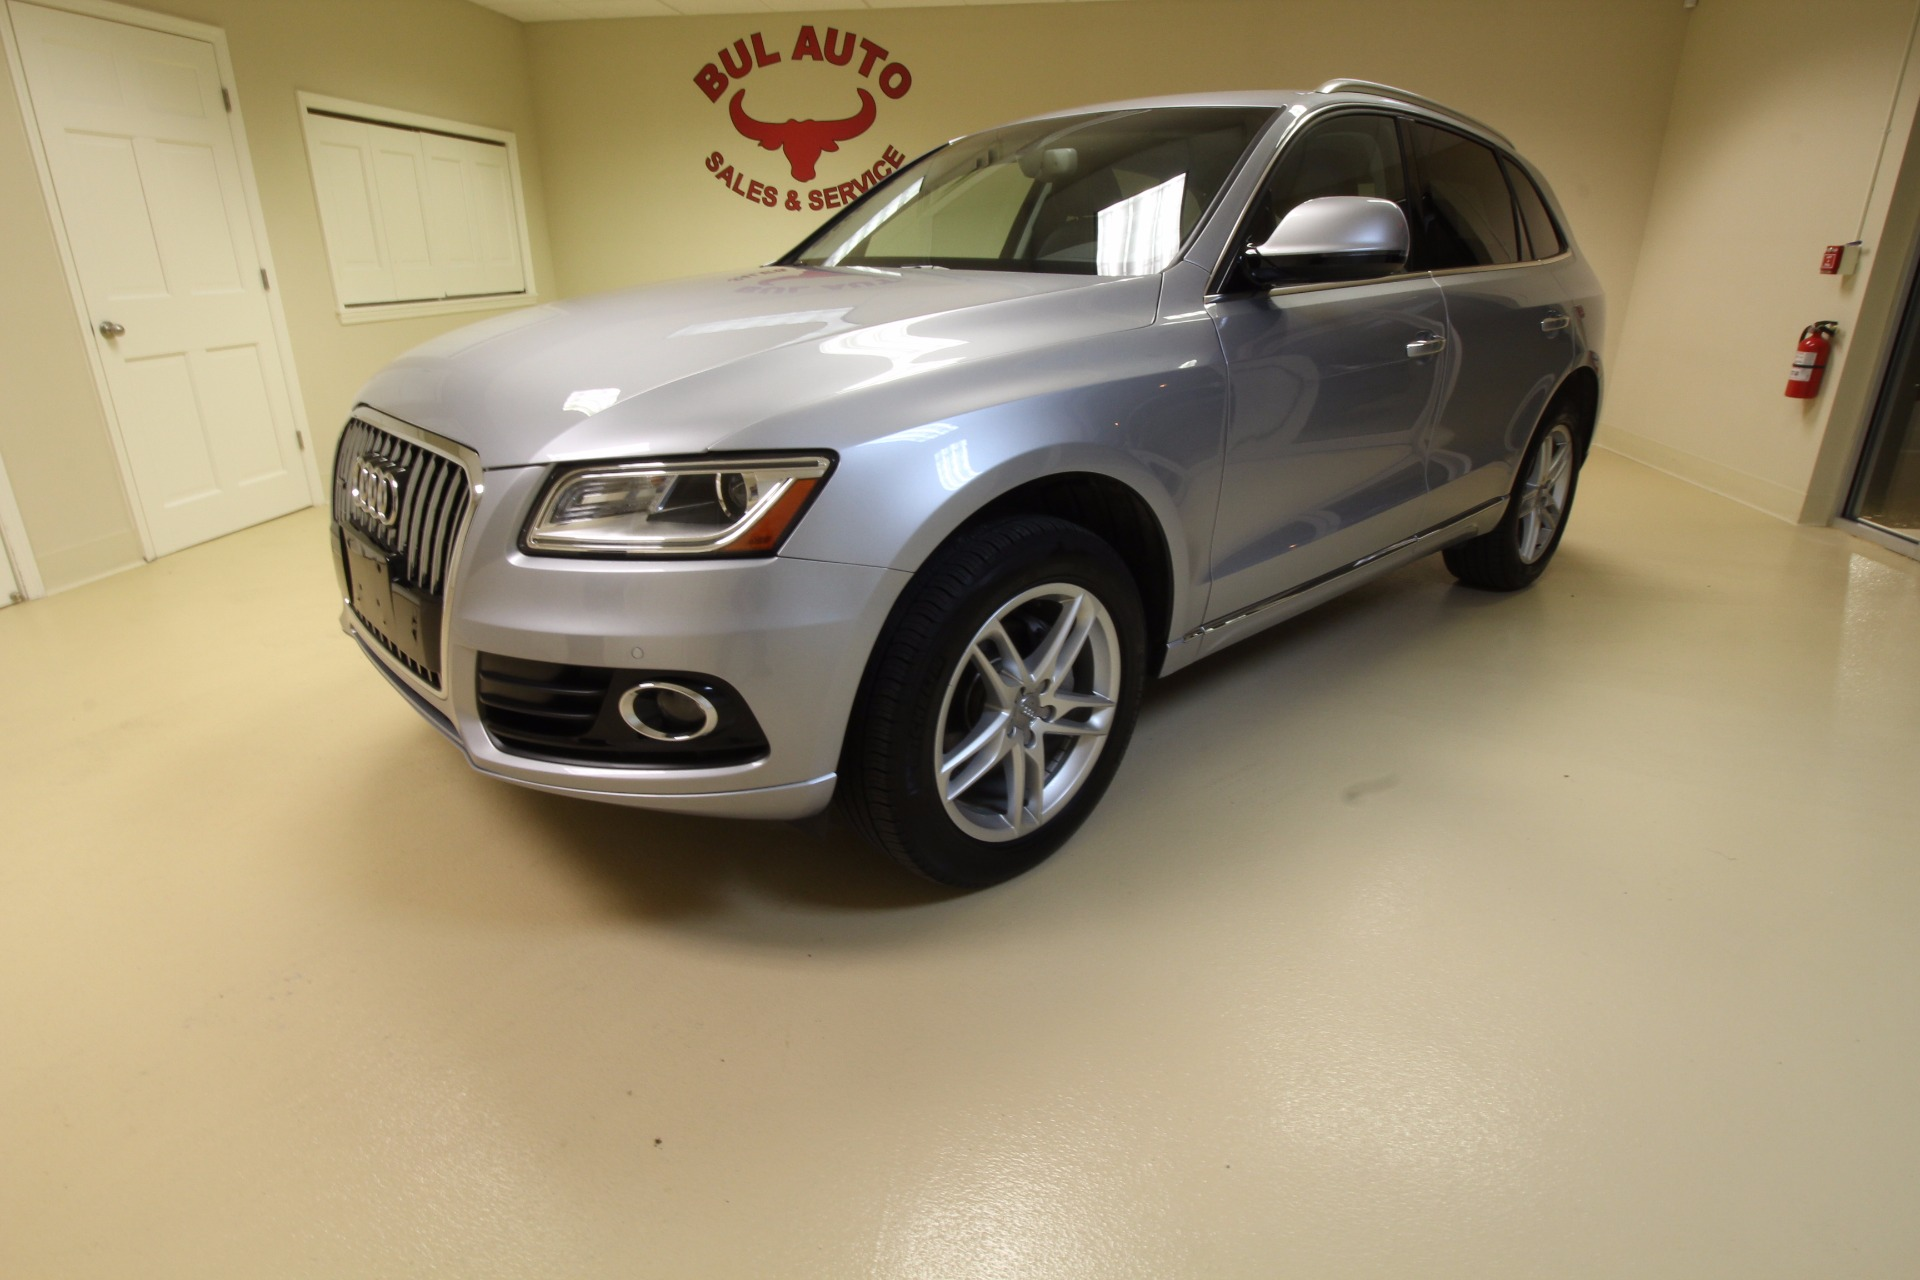 2015 audi q5 2 0t premium plus quattro stock 17062 for sale near albany ny ny audi dealer. Black Bedroom Furniture Sets. Home Design Ideas